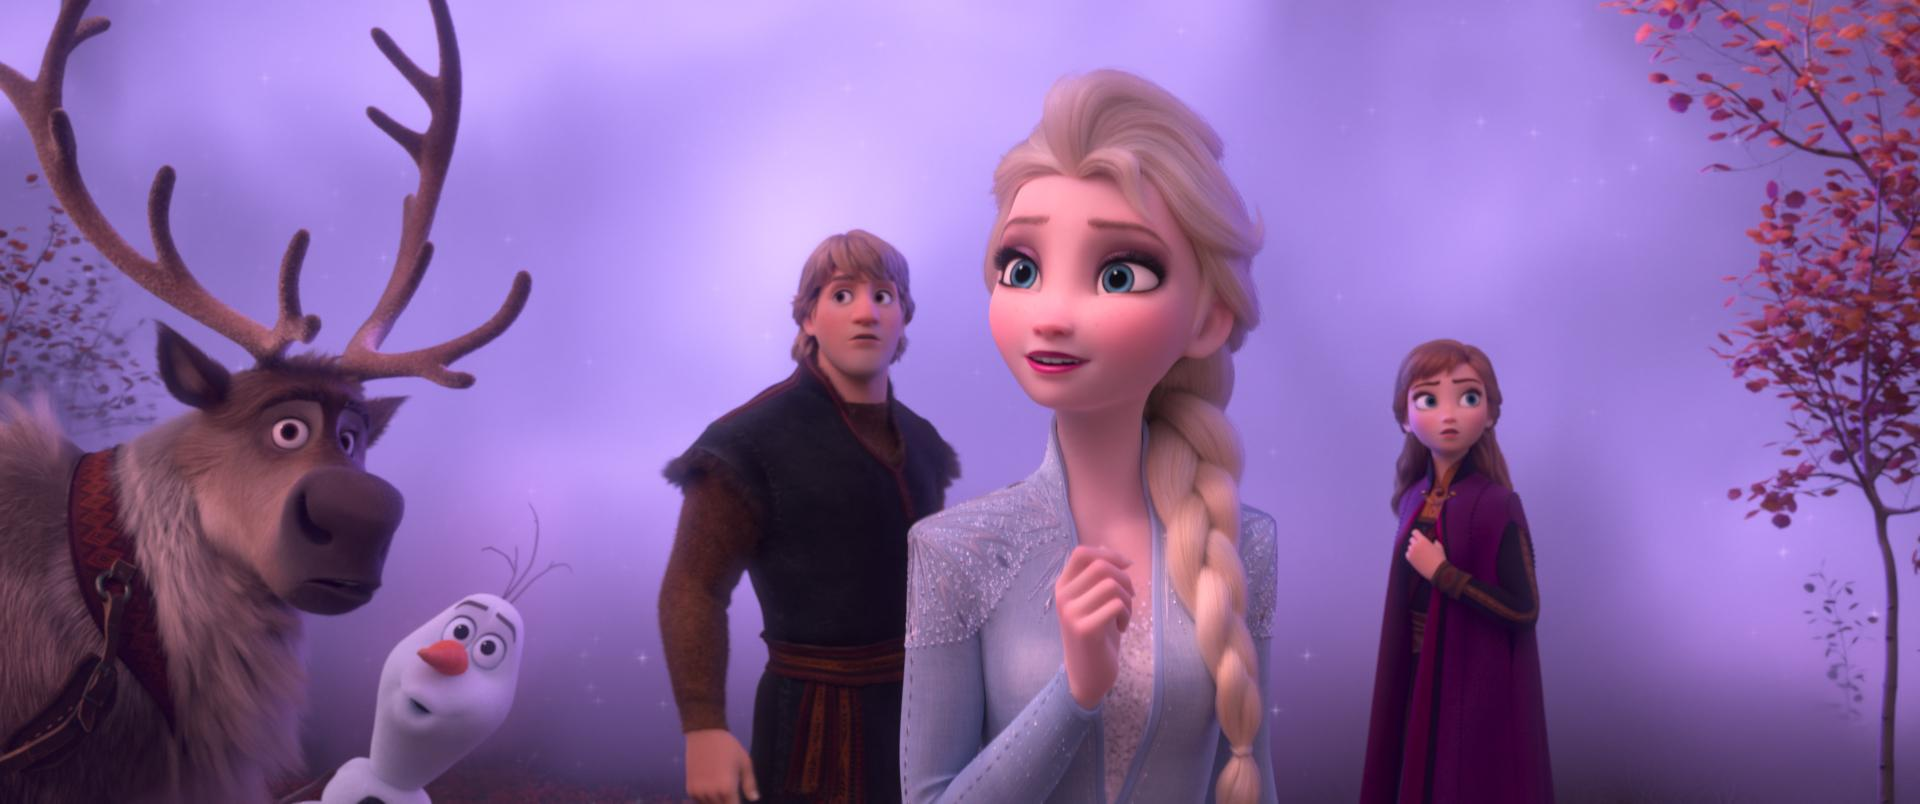 When will Frozen 2 be on Disney Plus